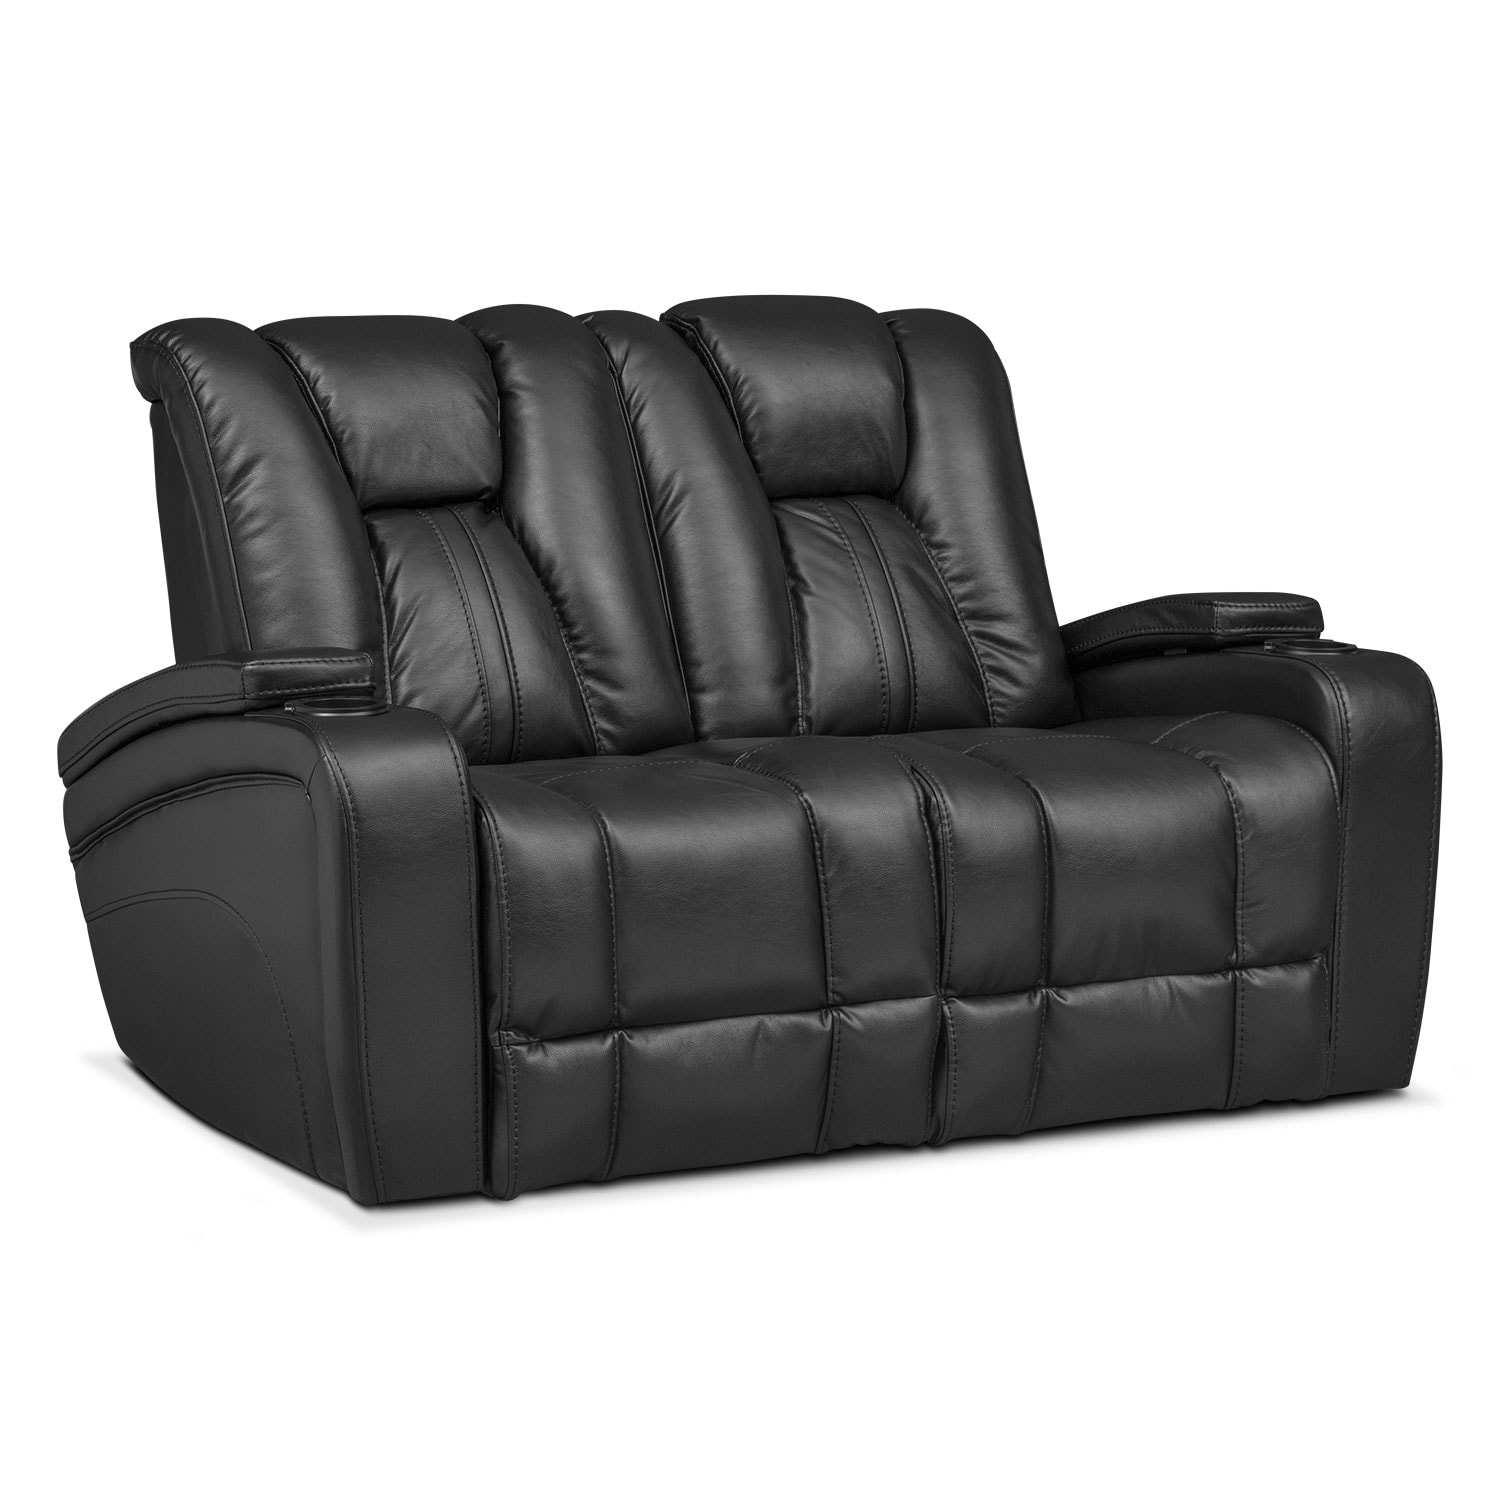 Living Room Furniture - Pulsar Dual Power Reclining Loveseat - Black